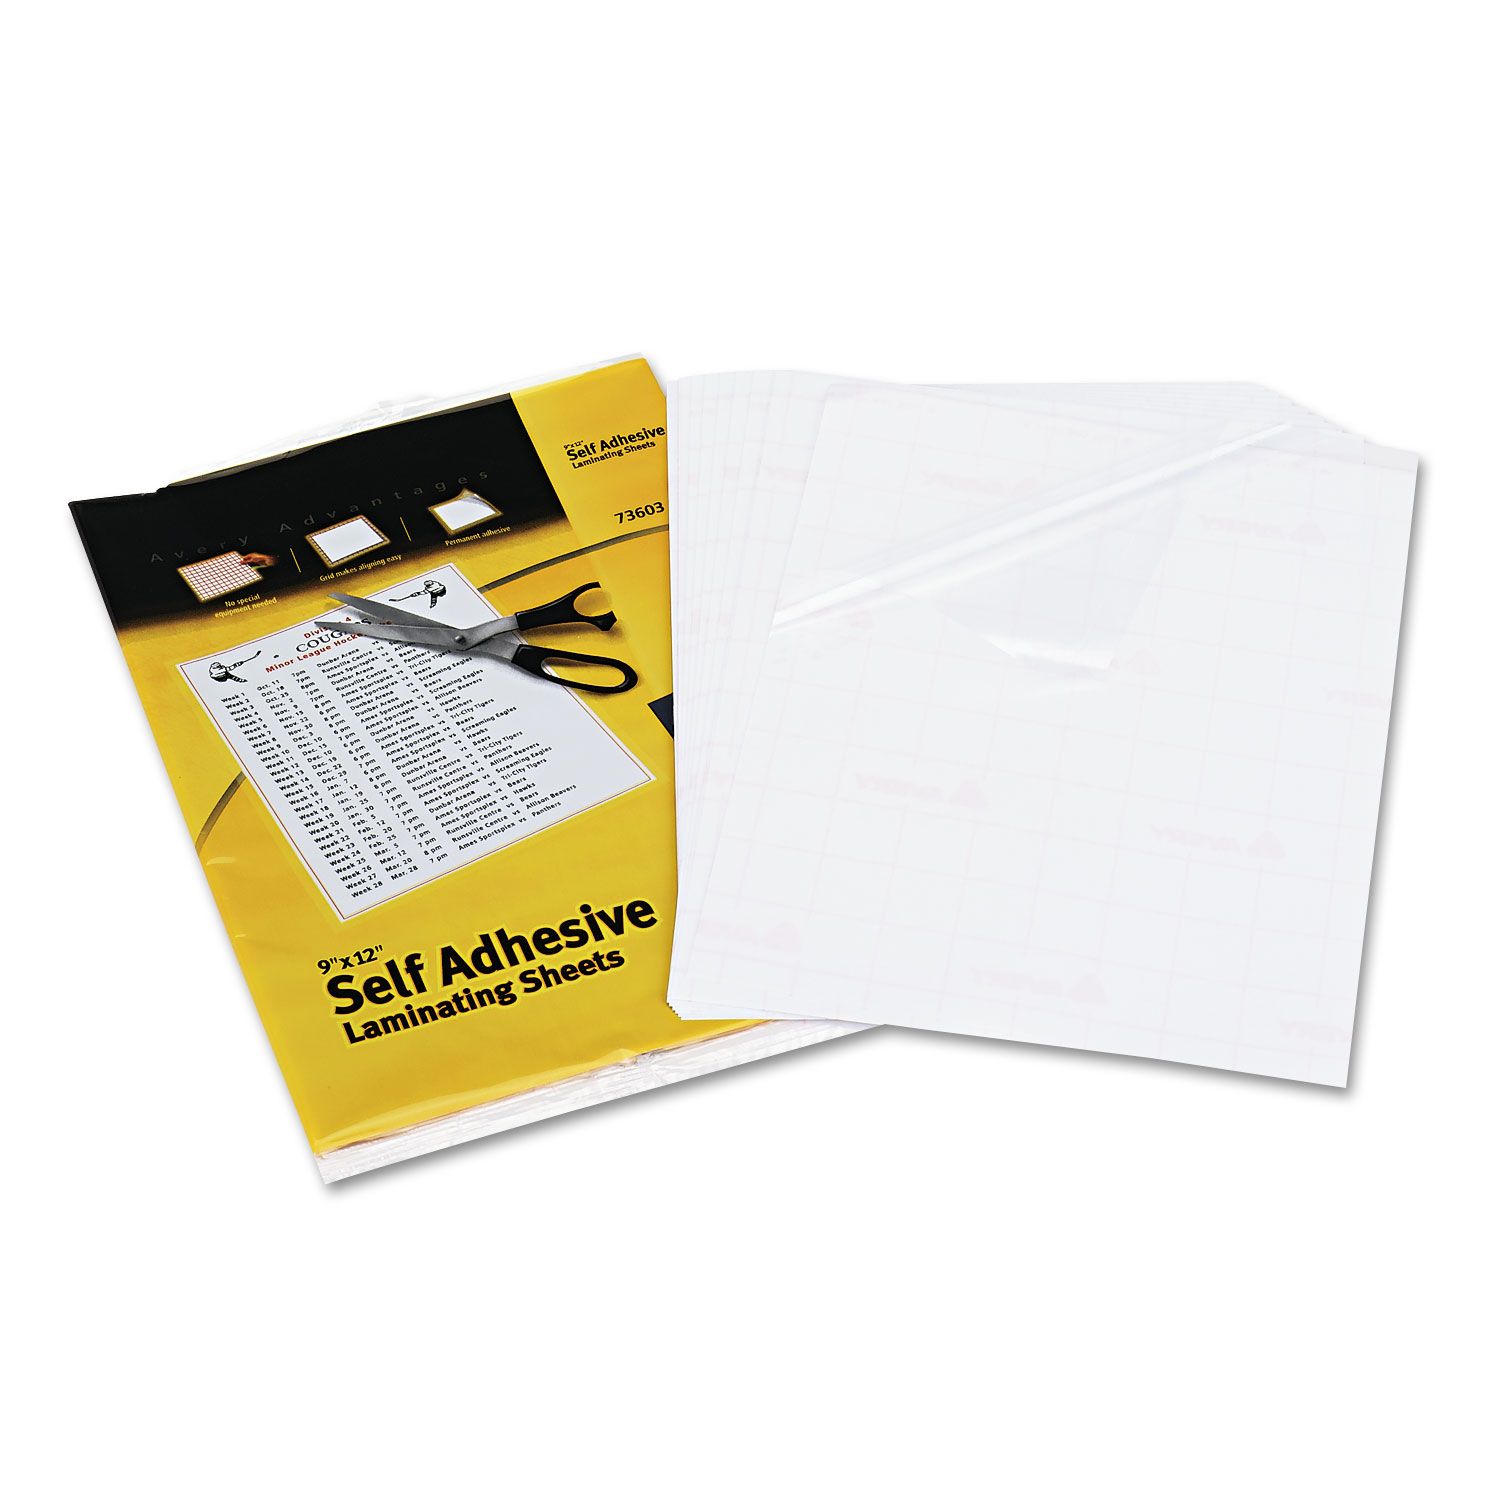 Epson Photo Quality Self-adhesive Sheets (8.3x11.7 Inches) Self adhesive photo sheets